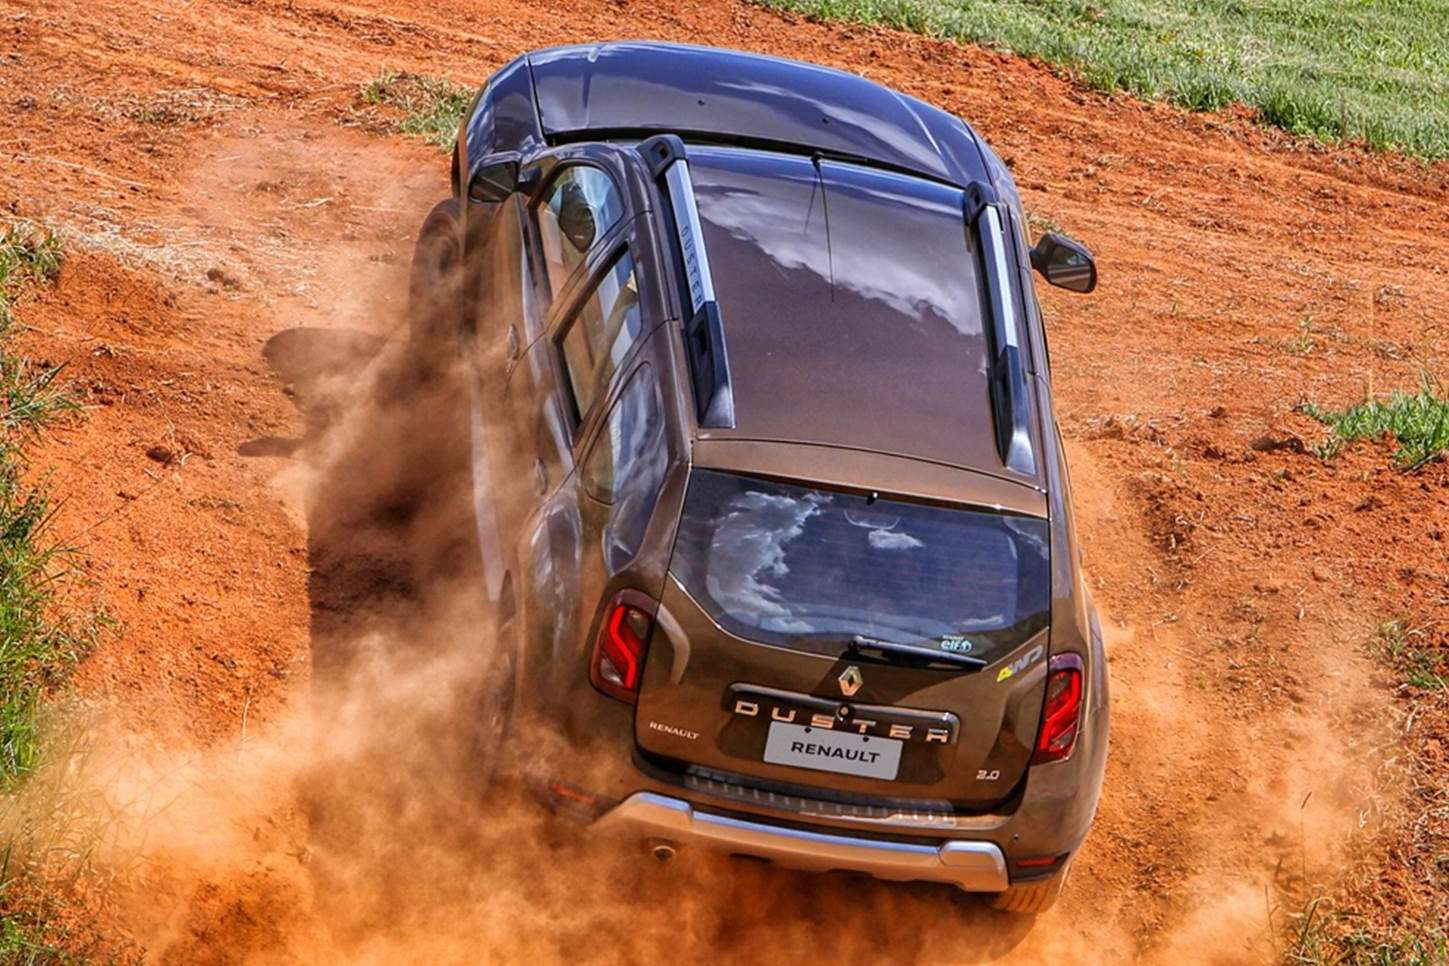 2016-renault-duster-launched-with-new-look-better-economy-in-brazil-photo-gallery_9